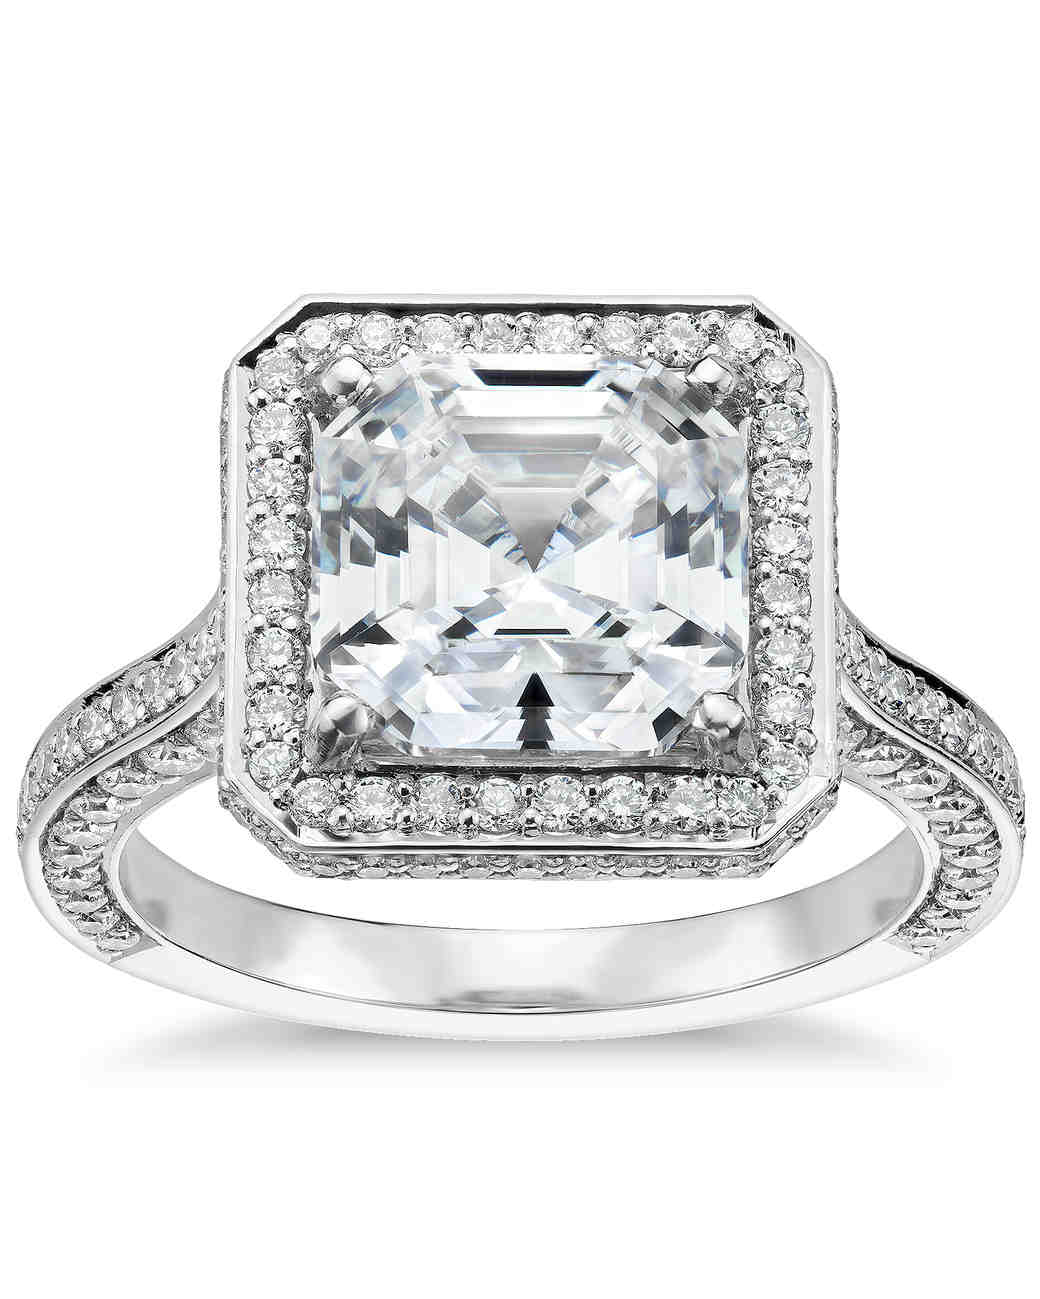 Blue Nile vintage-inspired asscher-cut engagement ring